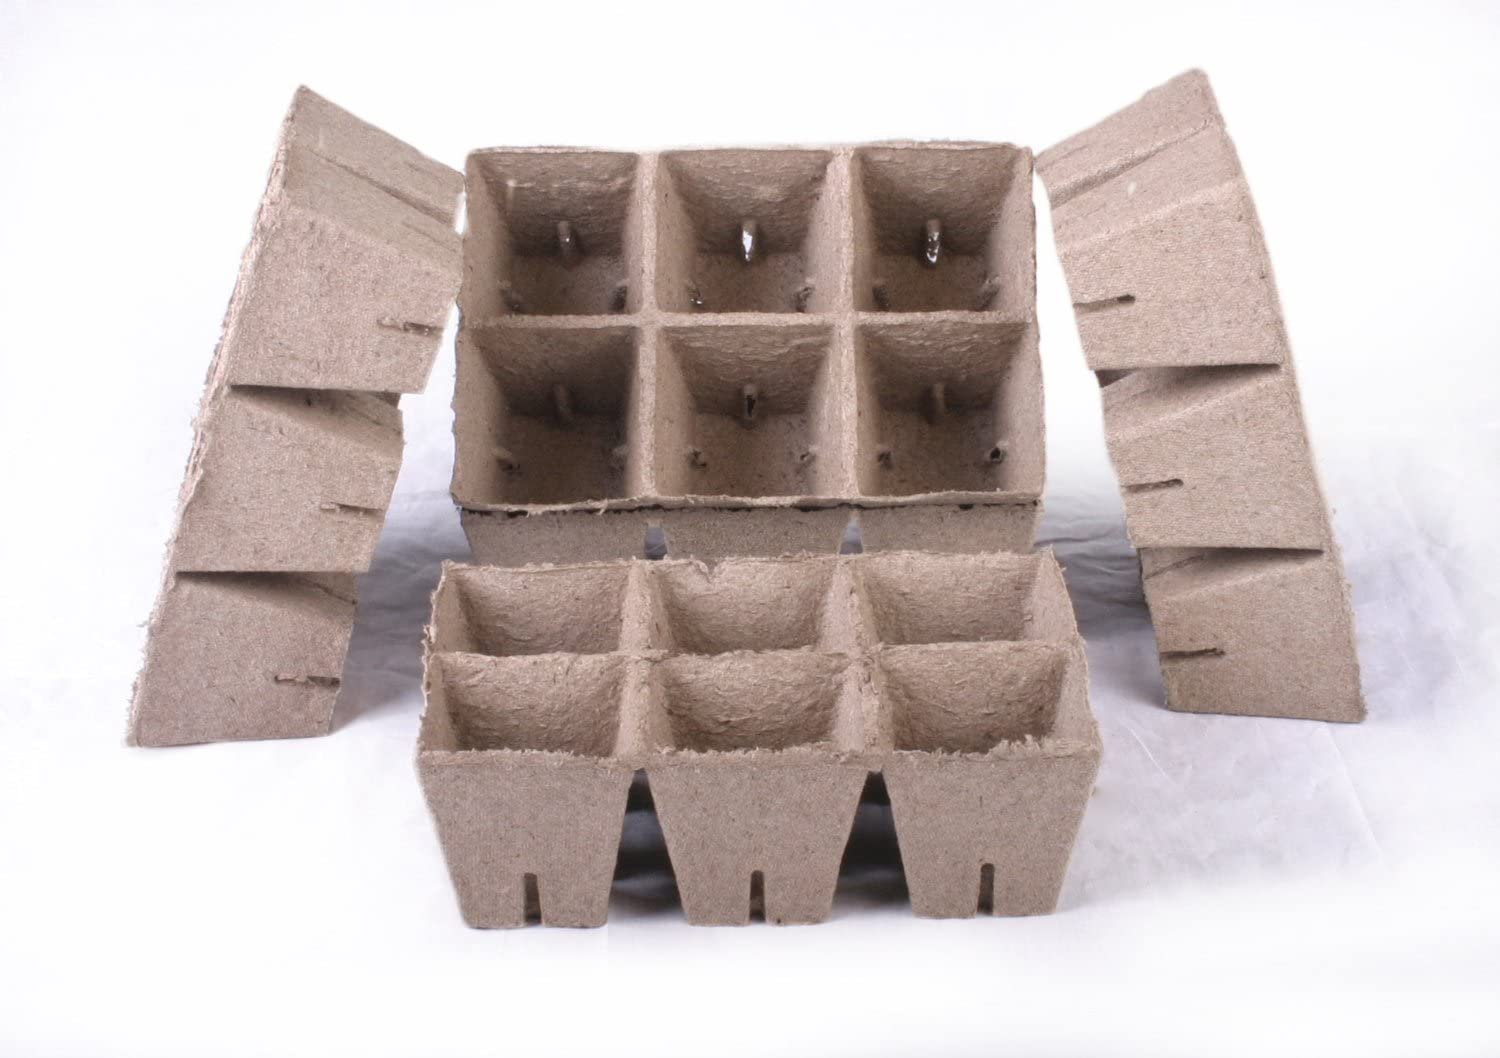 30 NEW Square Jiffy Peat Pots Size 3×3 – Strips Pots Are 3 Inch Square At the Top and 3 Inch Deep.